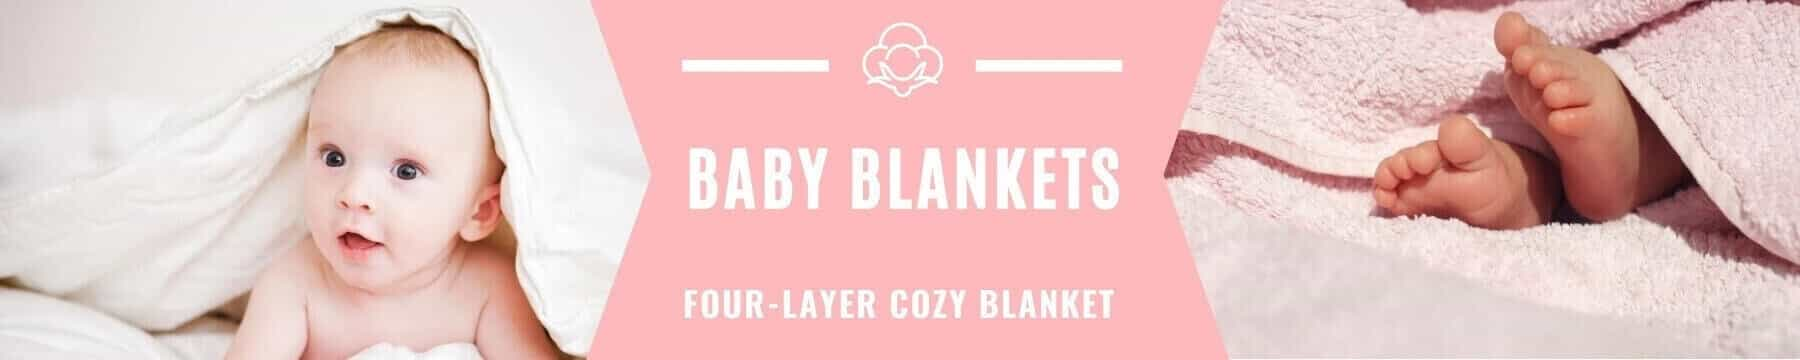 Banner Baby Blankets Collection - Roll Up Baby